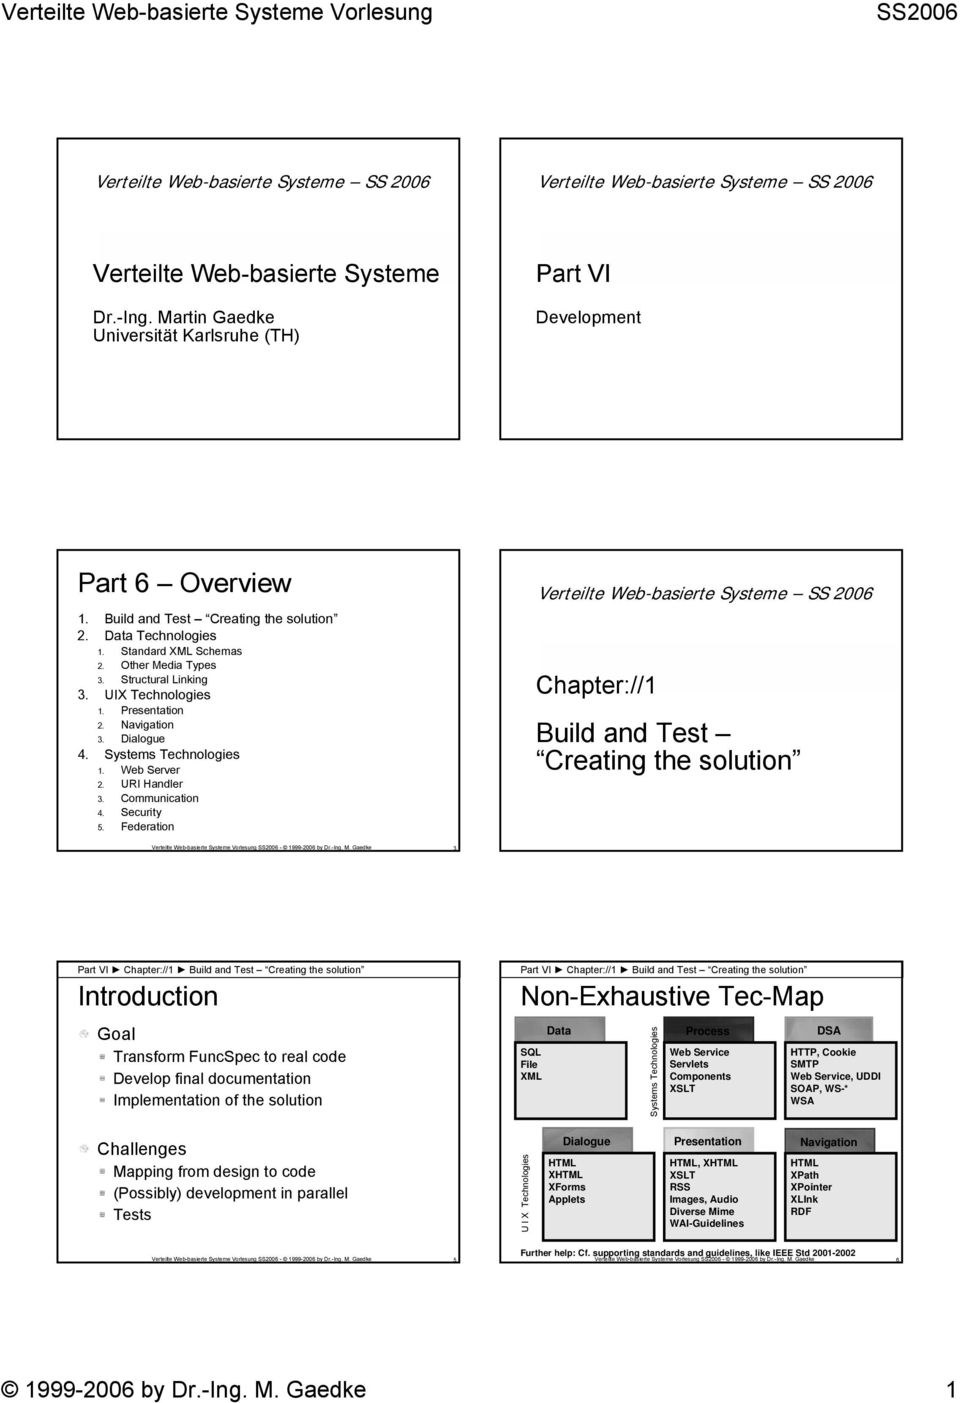 Security 5. Federation Chapter://1 Build and Test Creating the solution Verteilte Web-basierte Systeme Vorlesung - 1999-2006 by Dr.-Ing. M.